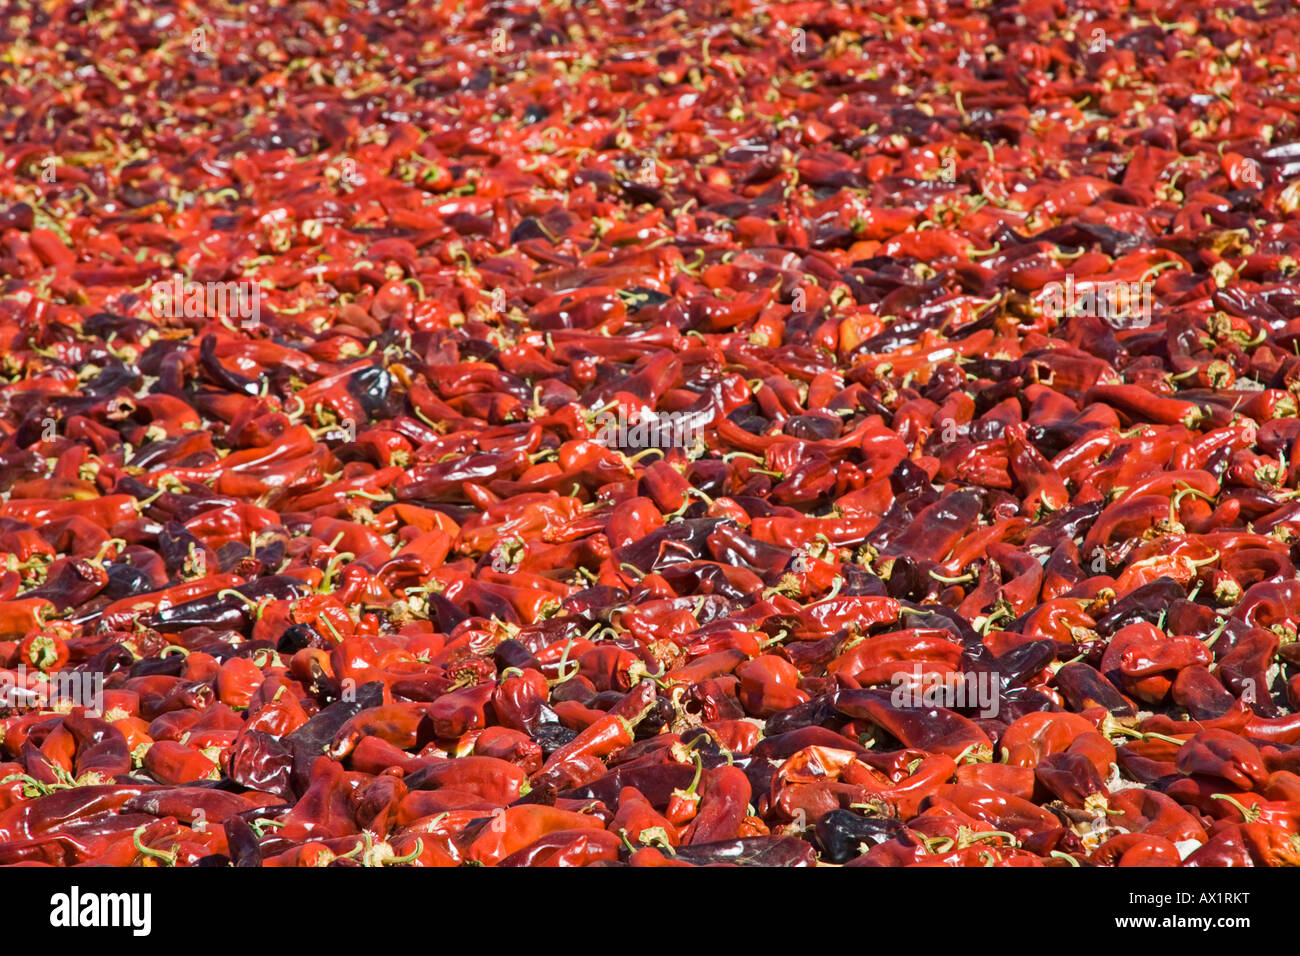 Paprika dry up in the sun, North Argentina, South America Stock Photo